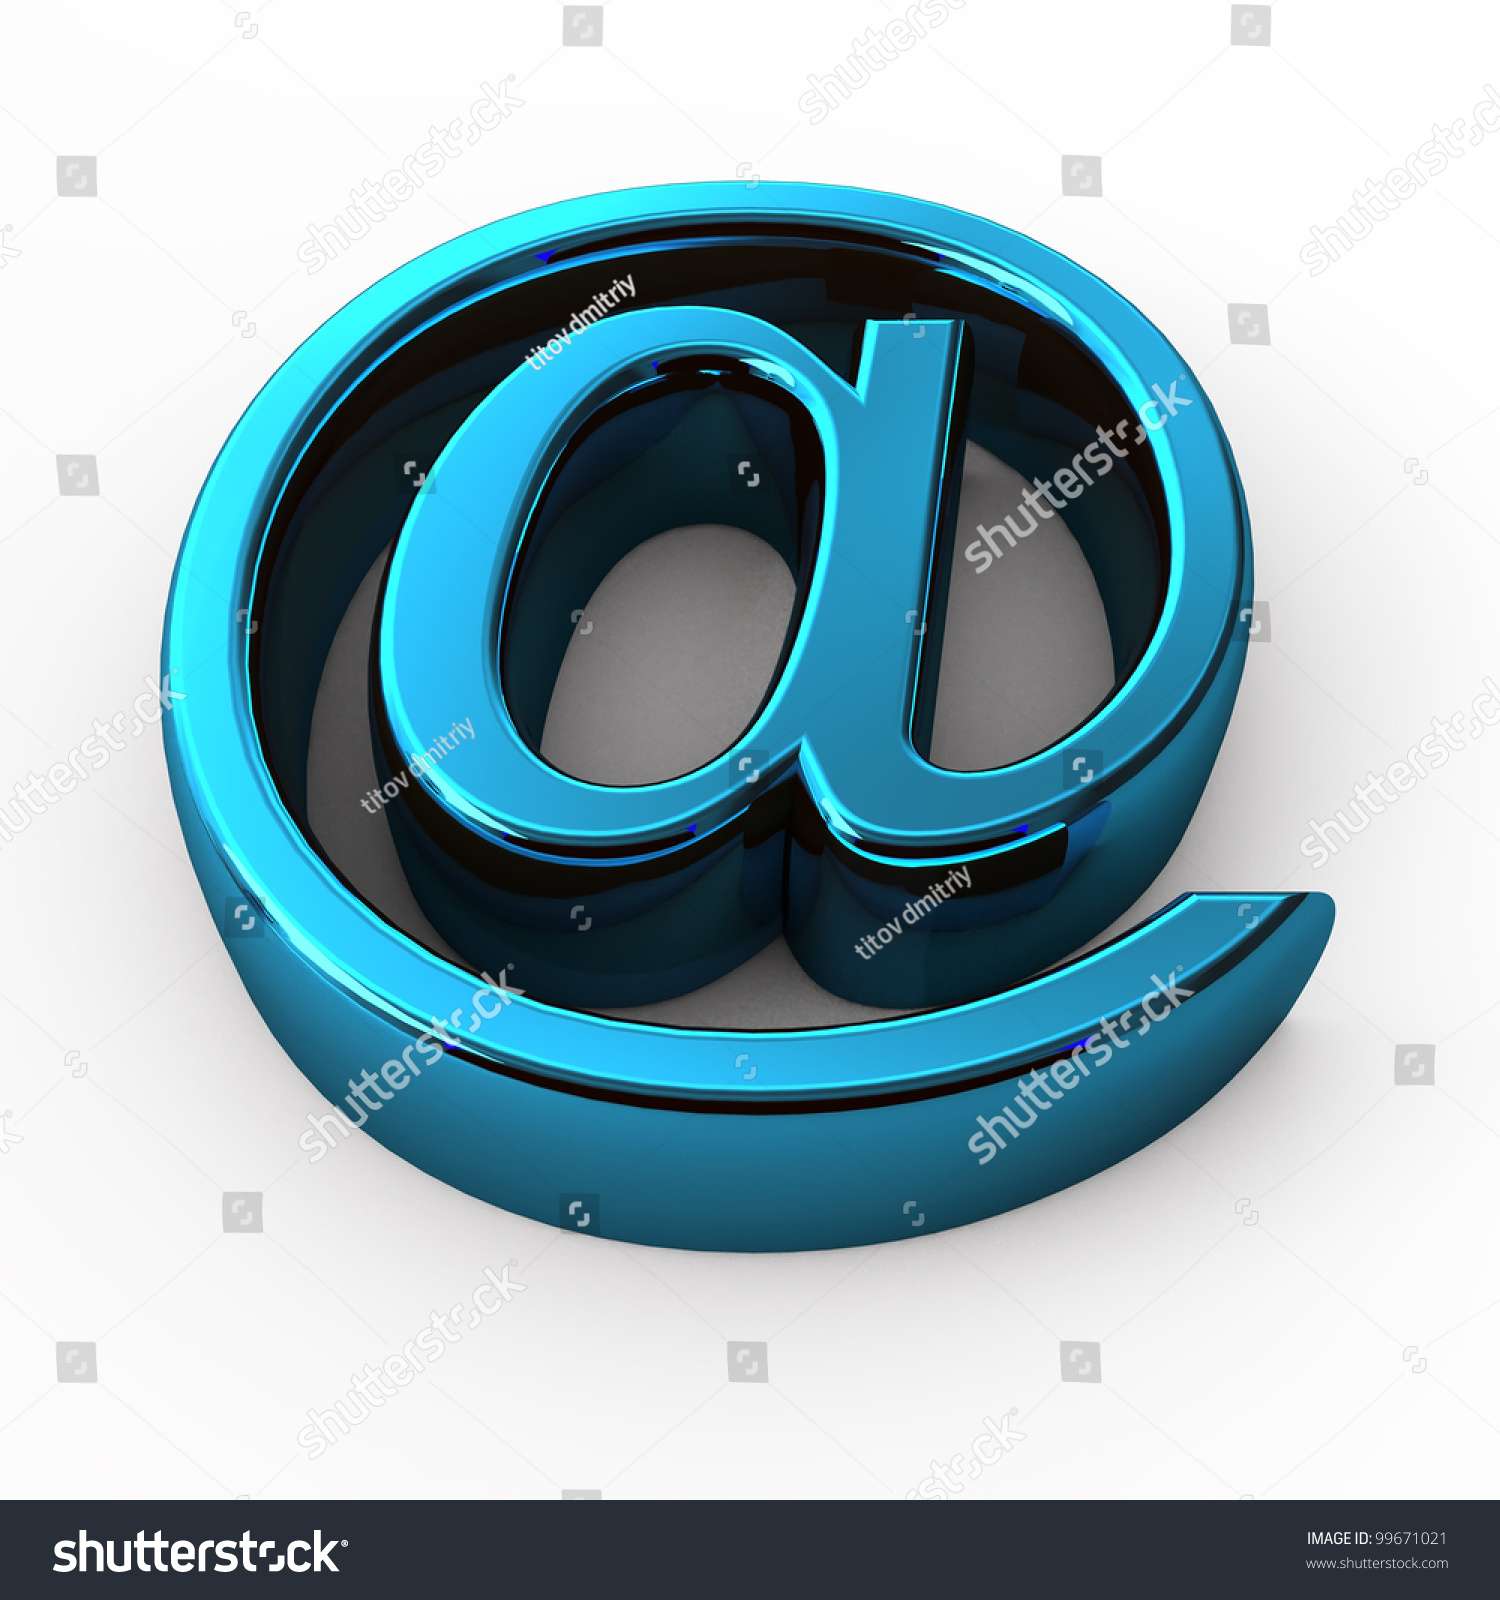 Steel email internet icon 3d isolated stock illustration 99671021 steel e mail internet icon 3d isolated on white background biocorpaavc